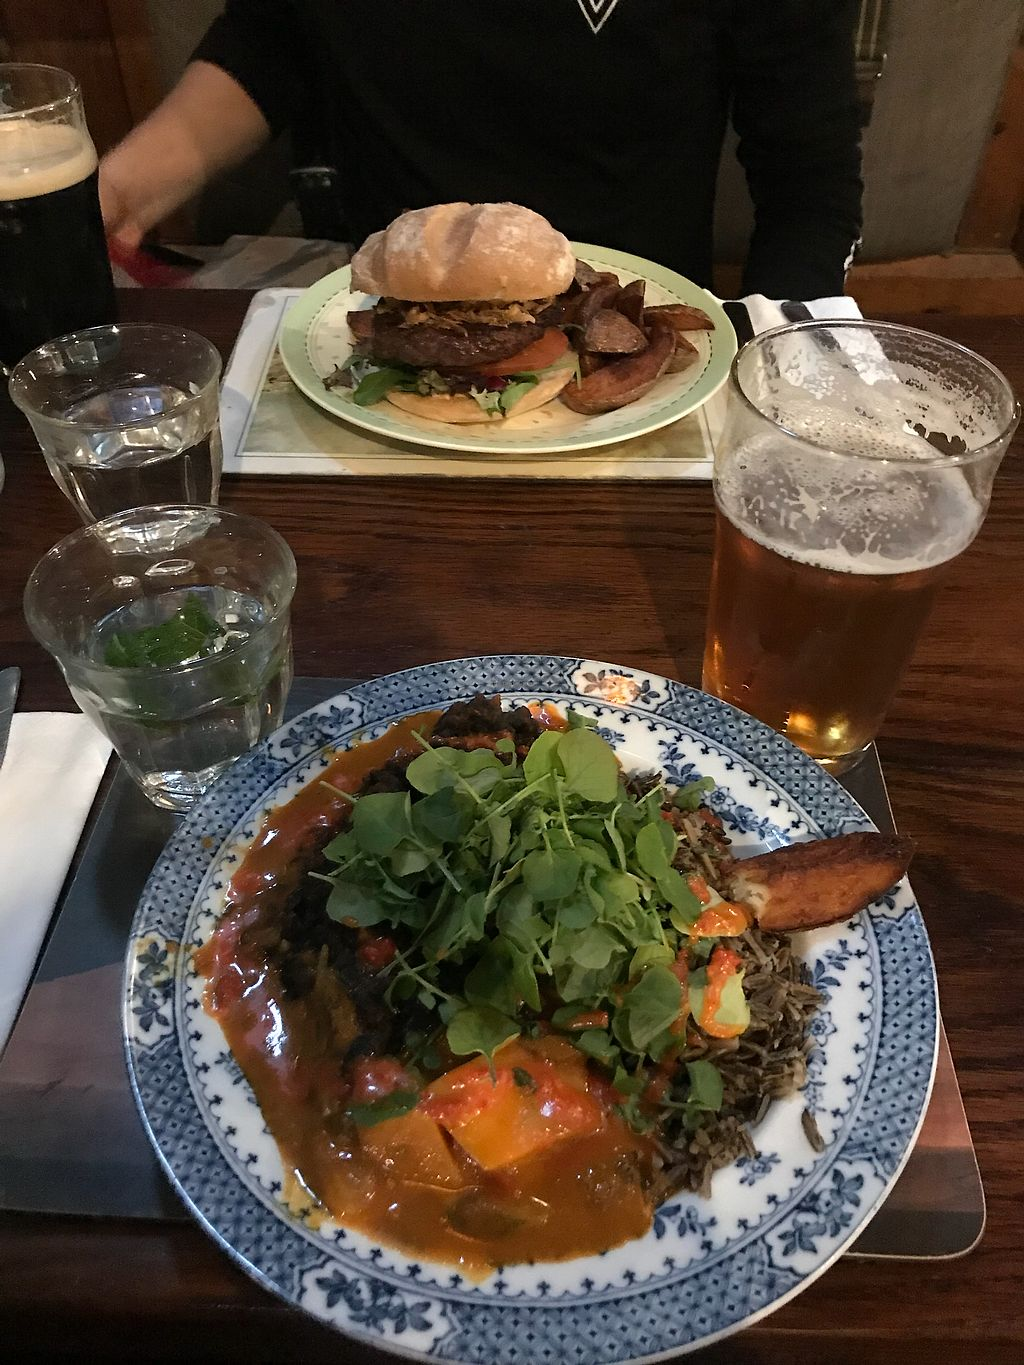 """Photo of Hillhead Bookclub  by <a href=""""/members/profile/KaitlinM"""">KaitlinM</a> <br/>Jamaican stew for me and beef burger for my partner  <br/> April 16, 2018  - <a href='/contact/abuse/image/115254/386888'>Report</a>"""